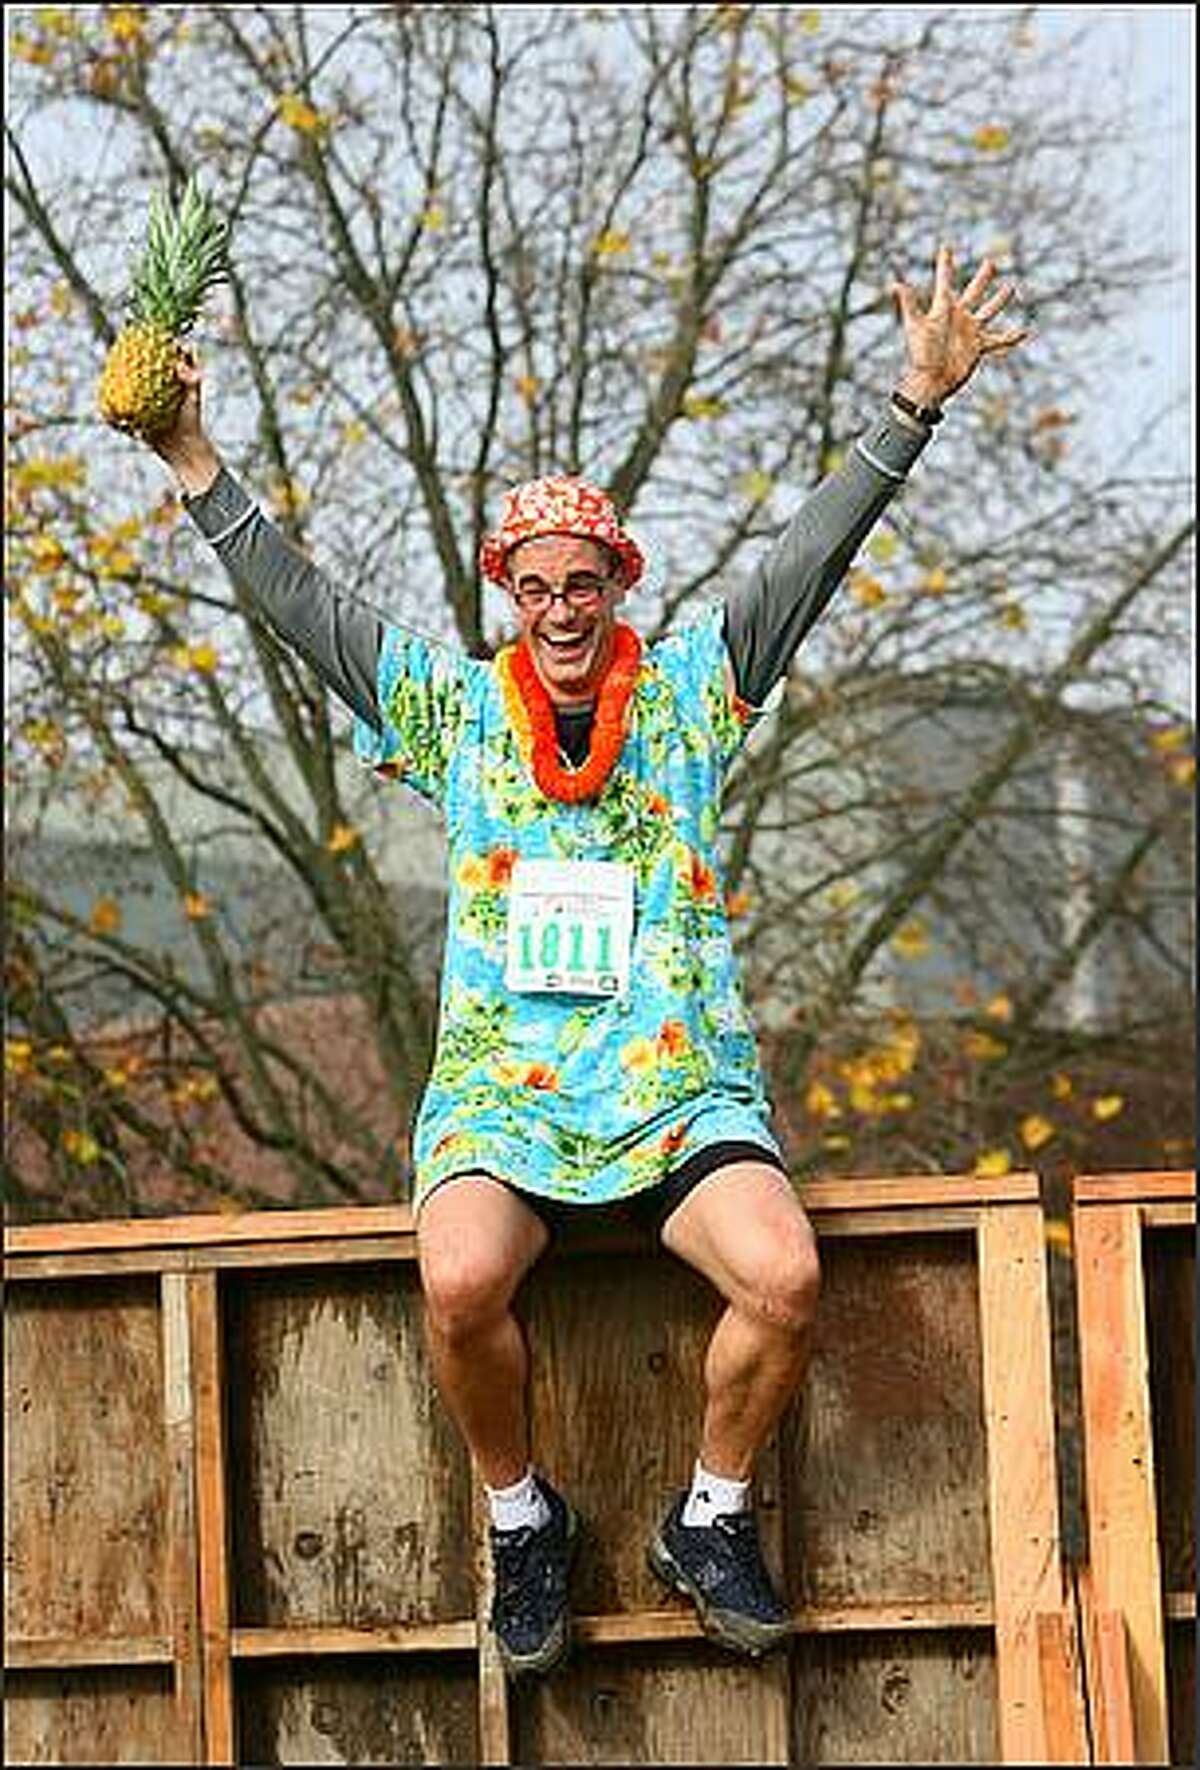 Ted Mandelkorn raises his arms as he summits an obstacle during The Winter Pineapple Classic, a 5k run and obstacle course, at Magnuson Park in Seattle. The race attracted over 3,000 runners who, as members of their respective teams, completed the course carrying pineapples. Many of the participants dressed up in goofy Hawaii-themed costumes. Proceeds from the event go toward The Leukemia and Lymphoma Society's mission to fund cancer research and assist patients and families fighting blood cancers.